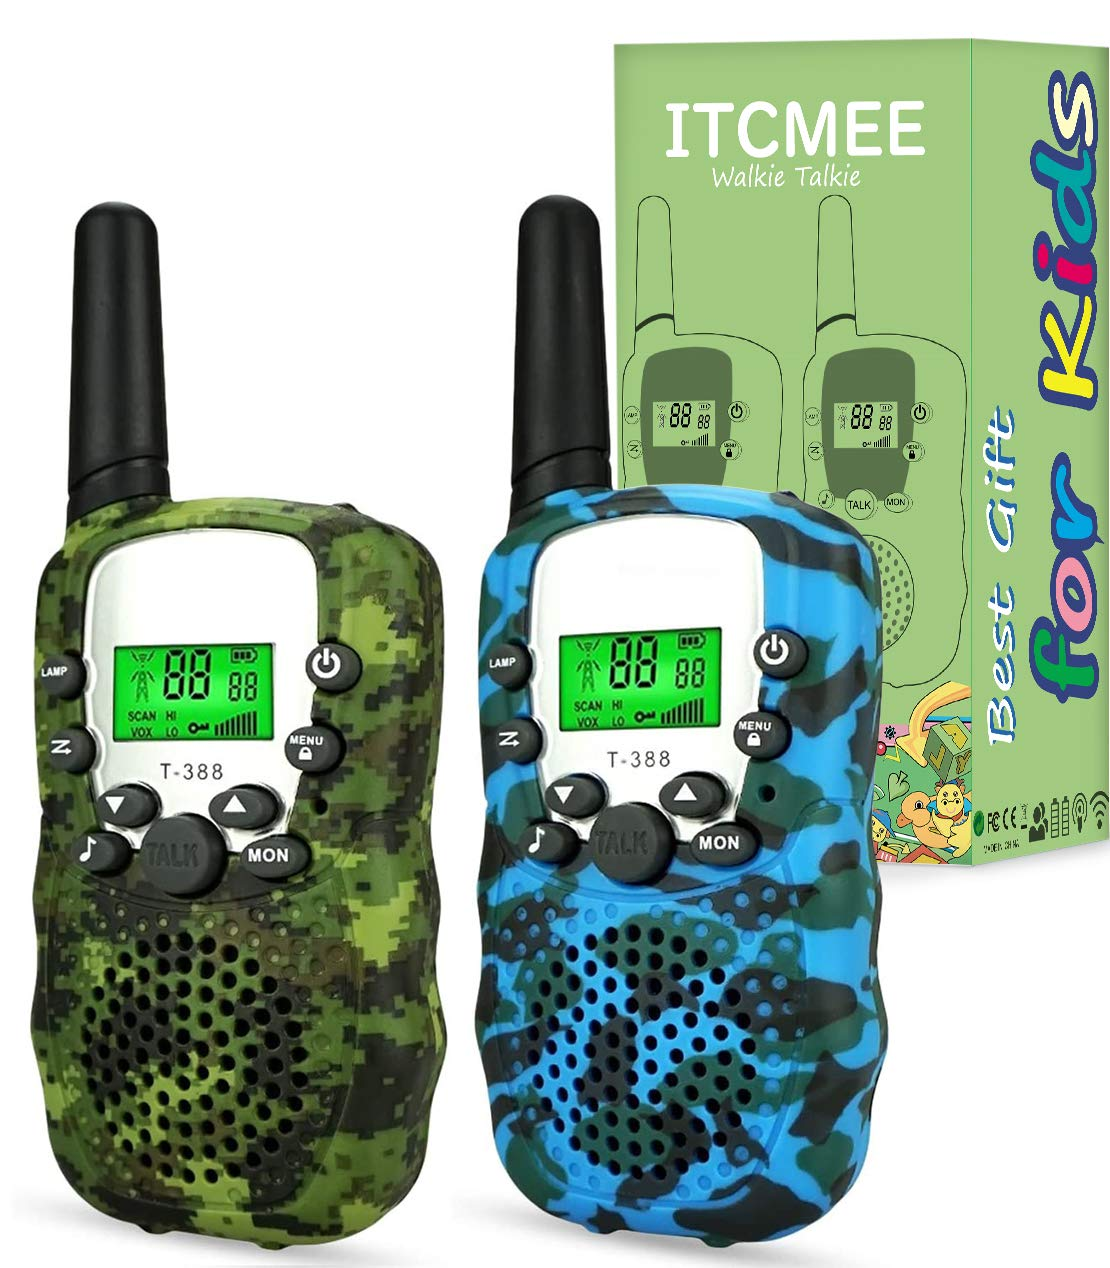 ITCMEE Walkie Talkies for Kids Upgraded Camouflage 22 Channels 2 Way Radio